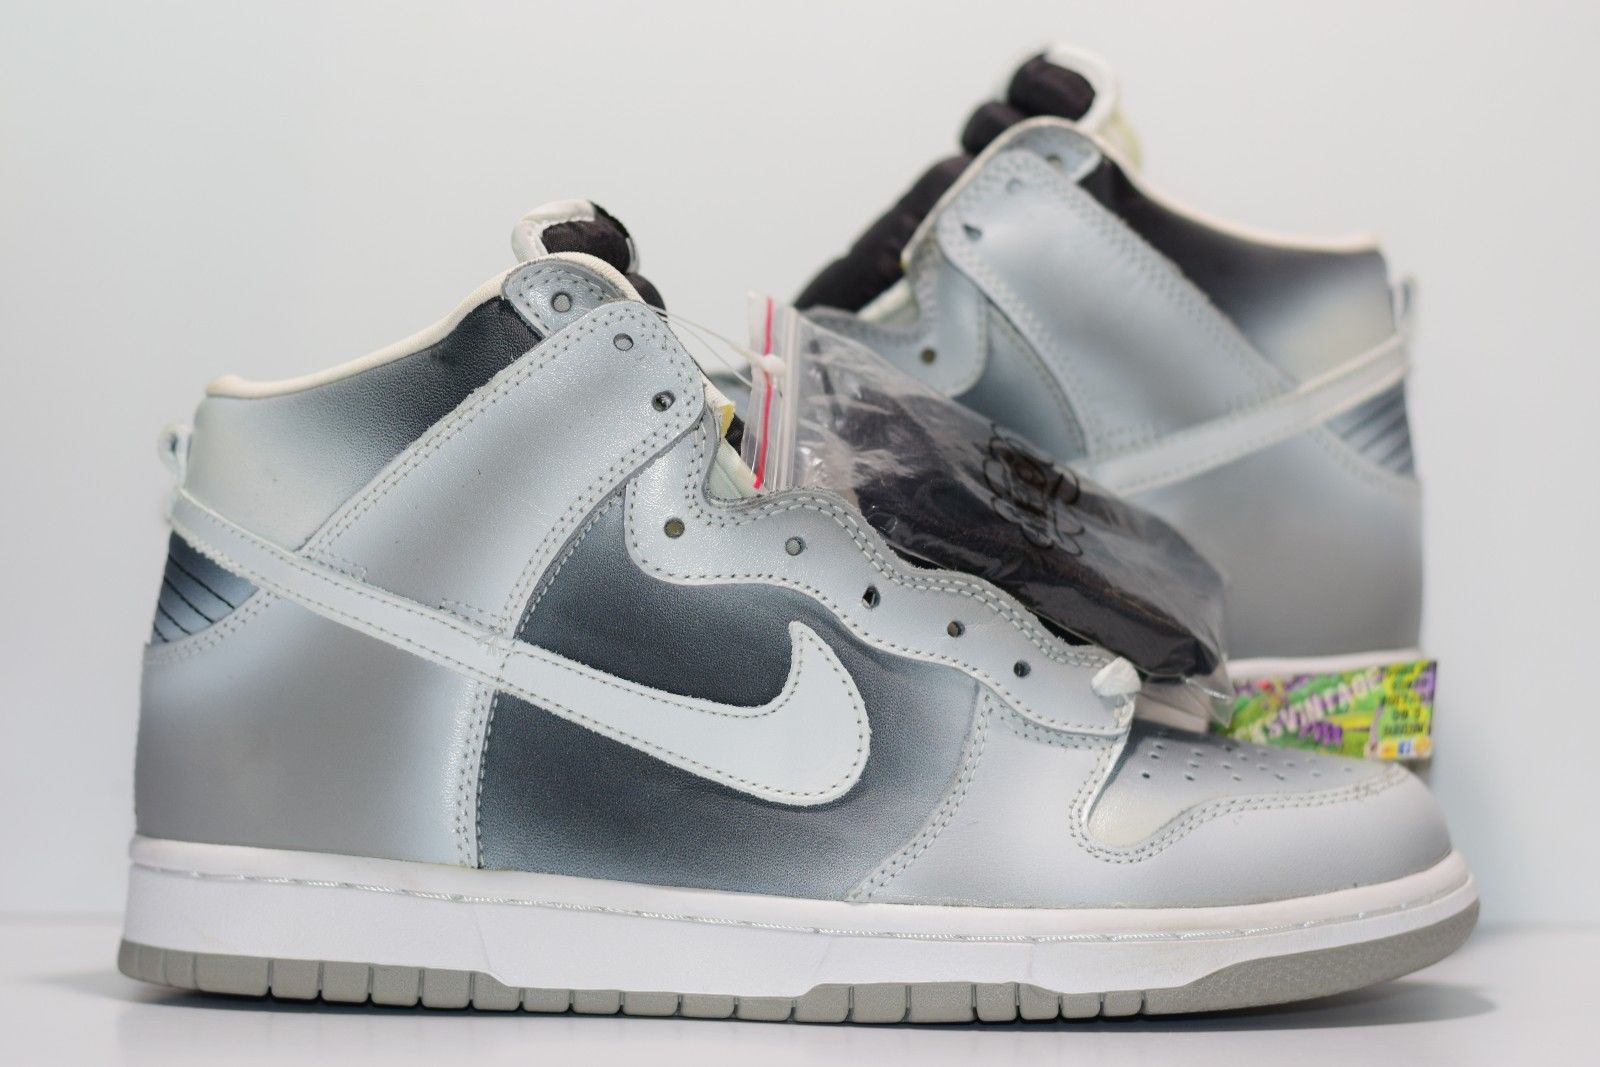 Rare Nike Sb Dunks For Sale - Notary Chamber 6098d319d